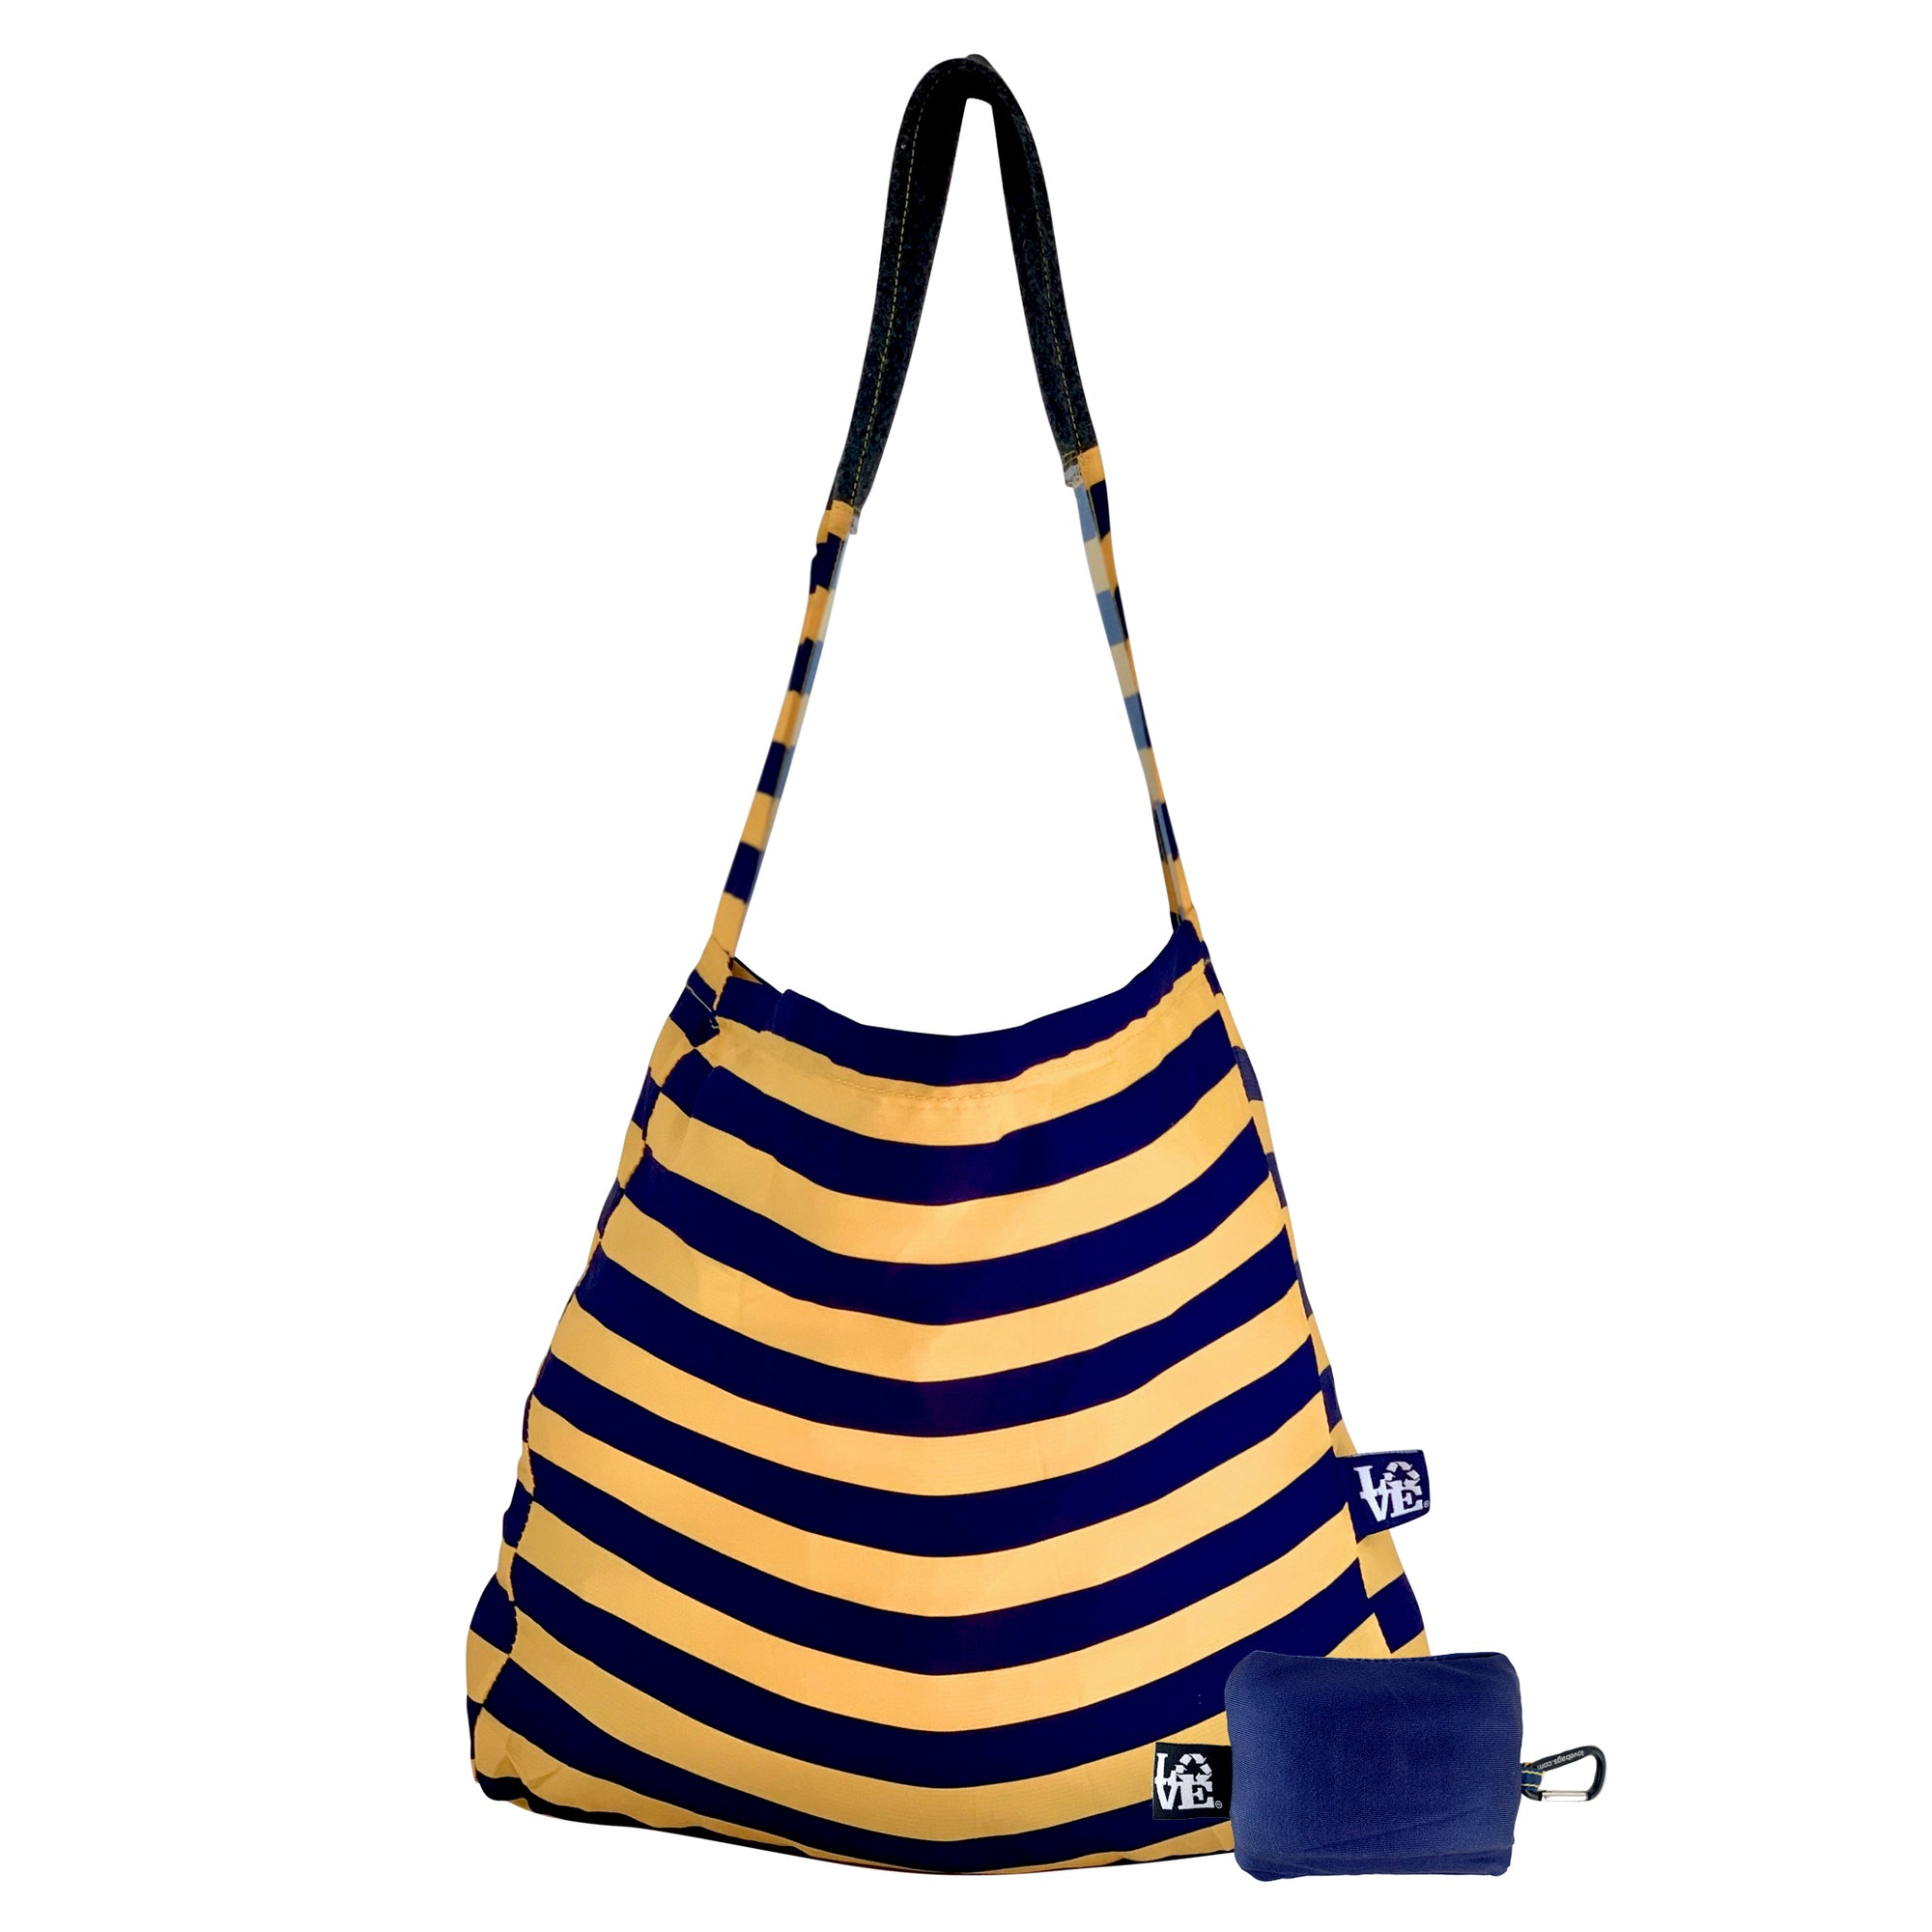 STASH IT -  FANFARE NAVY (Navy and Gold)